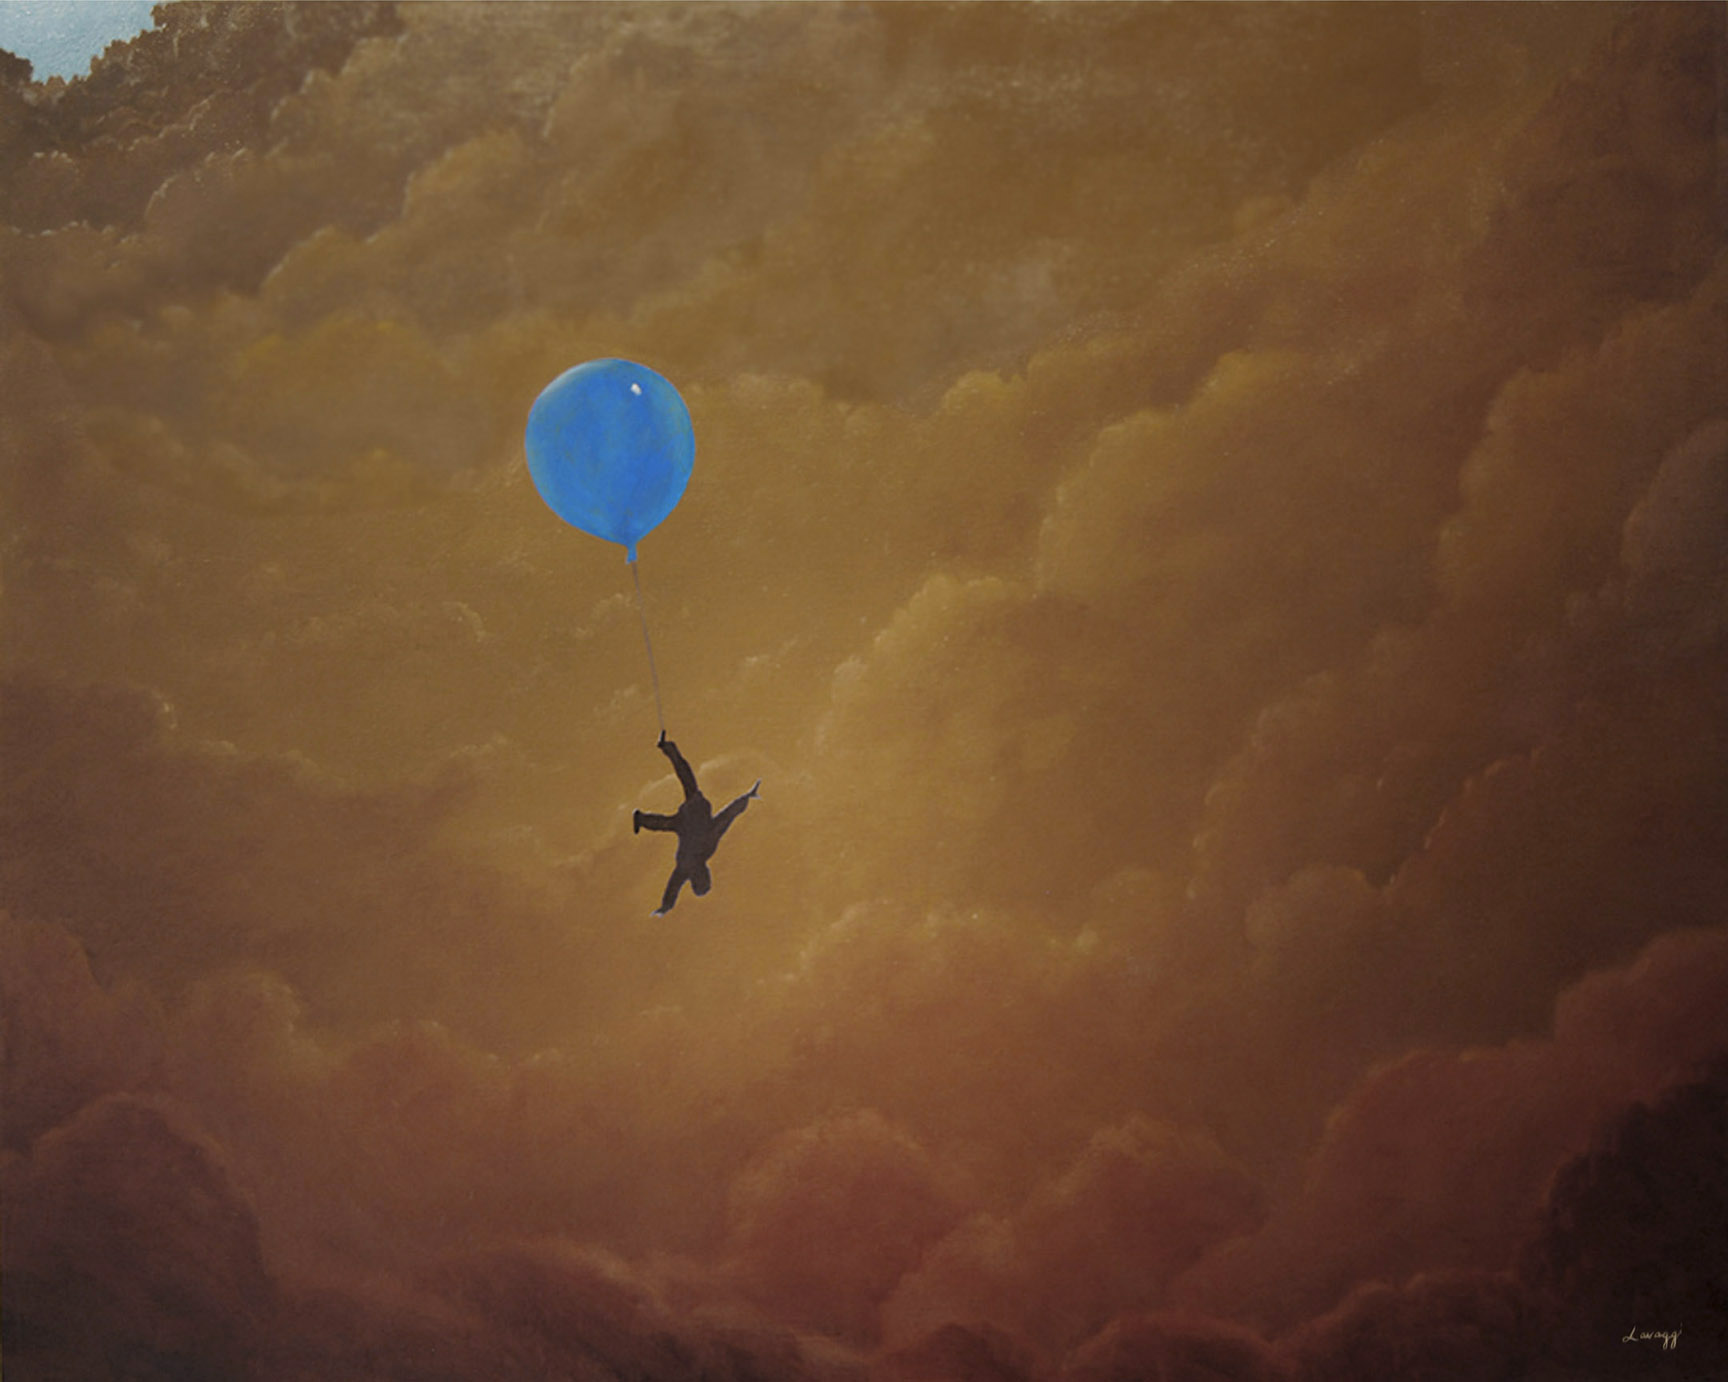 Steven Lavaggi's Once on a Blue Balloon